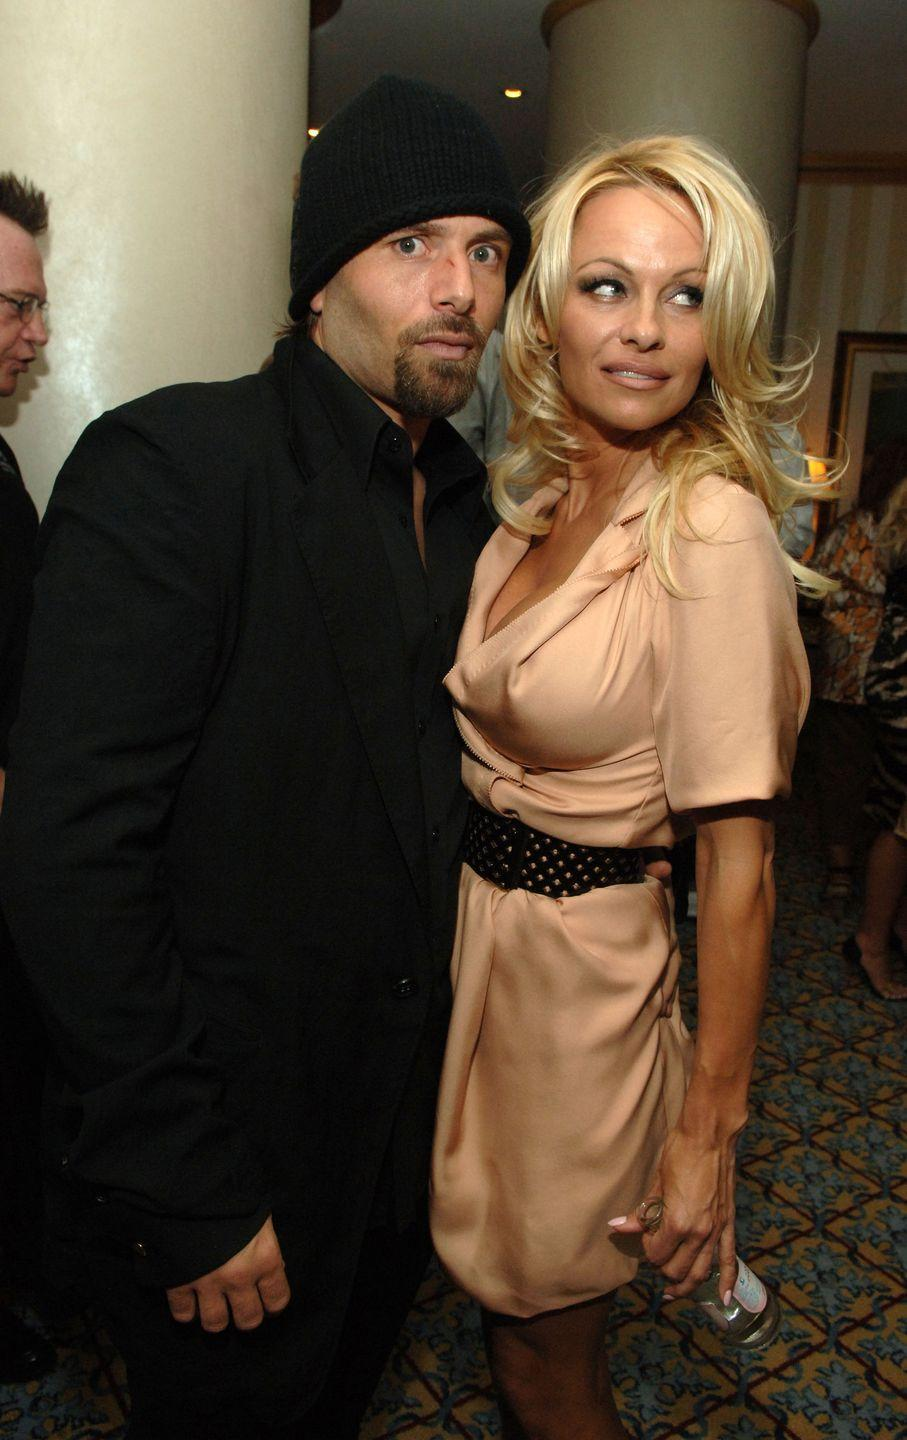 """<p>Baywatch actress Pamela Anderson filed for divorce from pro poker player Rick Salomon not once, not twice but <a href=""""https://www.usmagazine.com/celebrity-news/news/pamela-anderson-rick-salomon-split-for-third-time-star-files-divorce-2015122/"""" rel=""""nofollow noopener"""" target=""""_blank"""" data-ylk=""""slk:three times"""" class=""""link rapid-noclick-resp"""">three times</a>. The two got married in 2007, but annulled it a few months later. After rekindling their relationship in 2014, the pair <a href=""""https://www.usmagazine.com/celebrity-news/news/pamela-anderson-secretly-marries-rick-salomon-wedding-ring-2014121/"""" rel=""""nofollow noopener"""" target=""""_blank"""" data-ylk=""""slk:secretly remarried"""" class=""""link rapid-noclick-resp"""">secretly remarried</a>. She filed for divorce soon after, only to change her mind and continue the marriage—that is, until September 2015. </p>"""